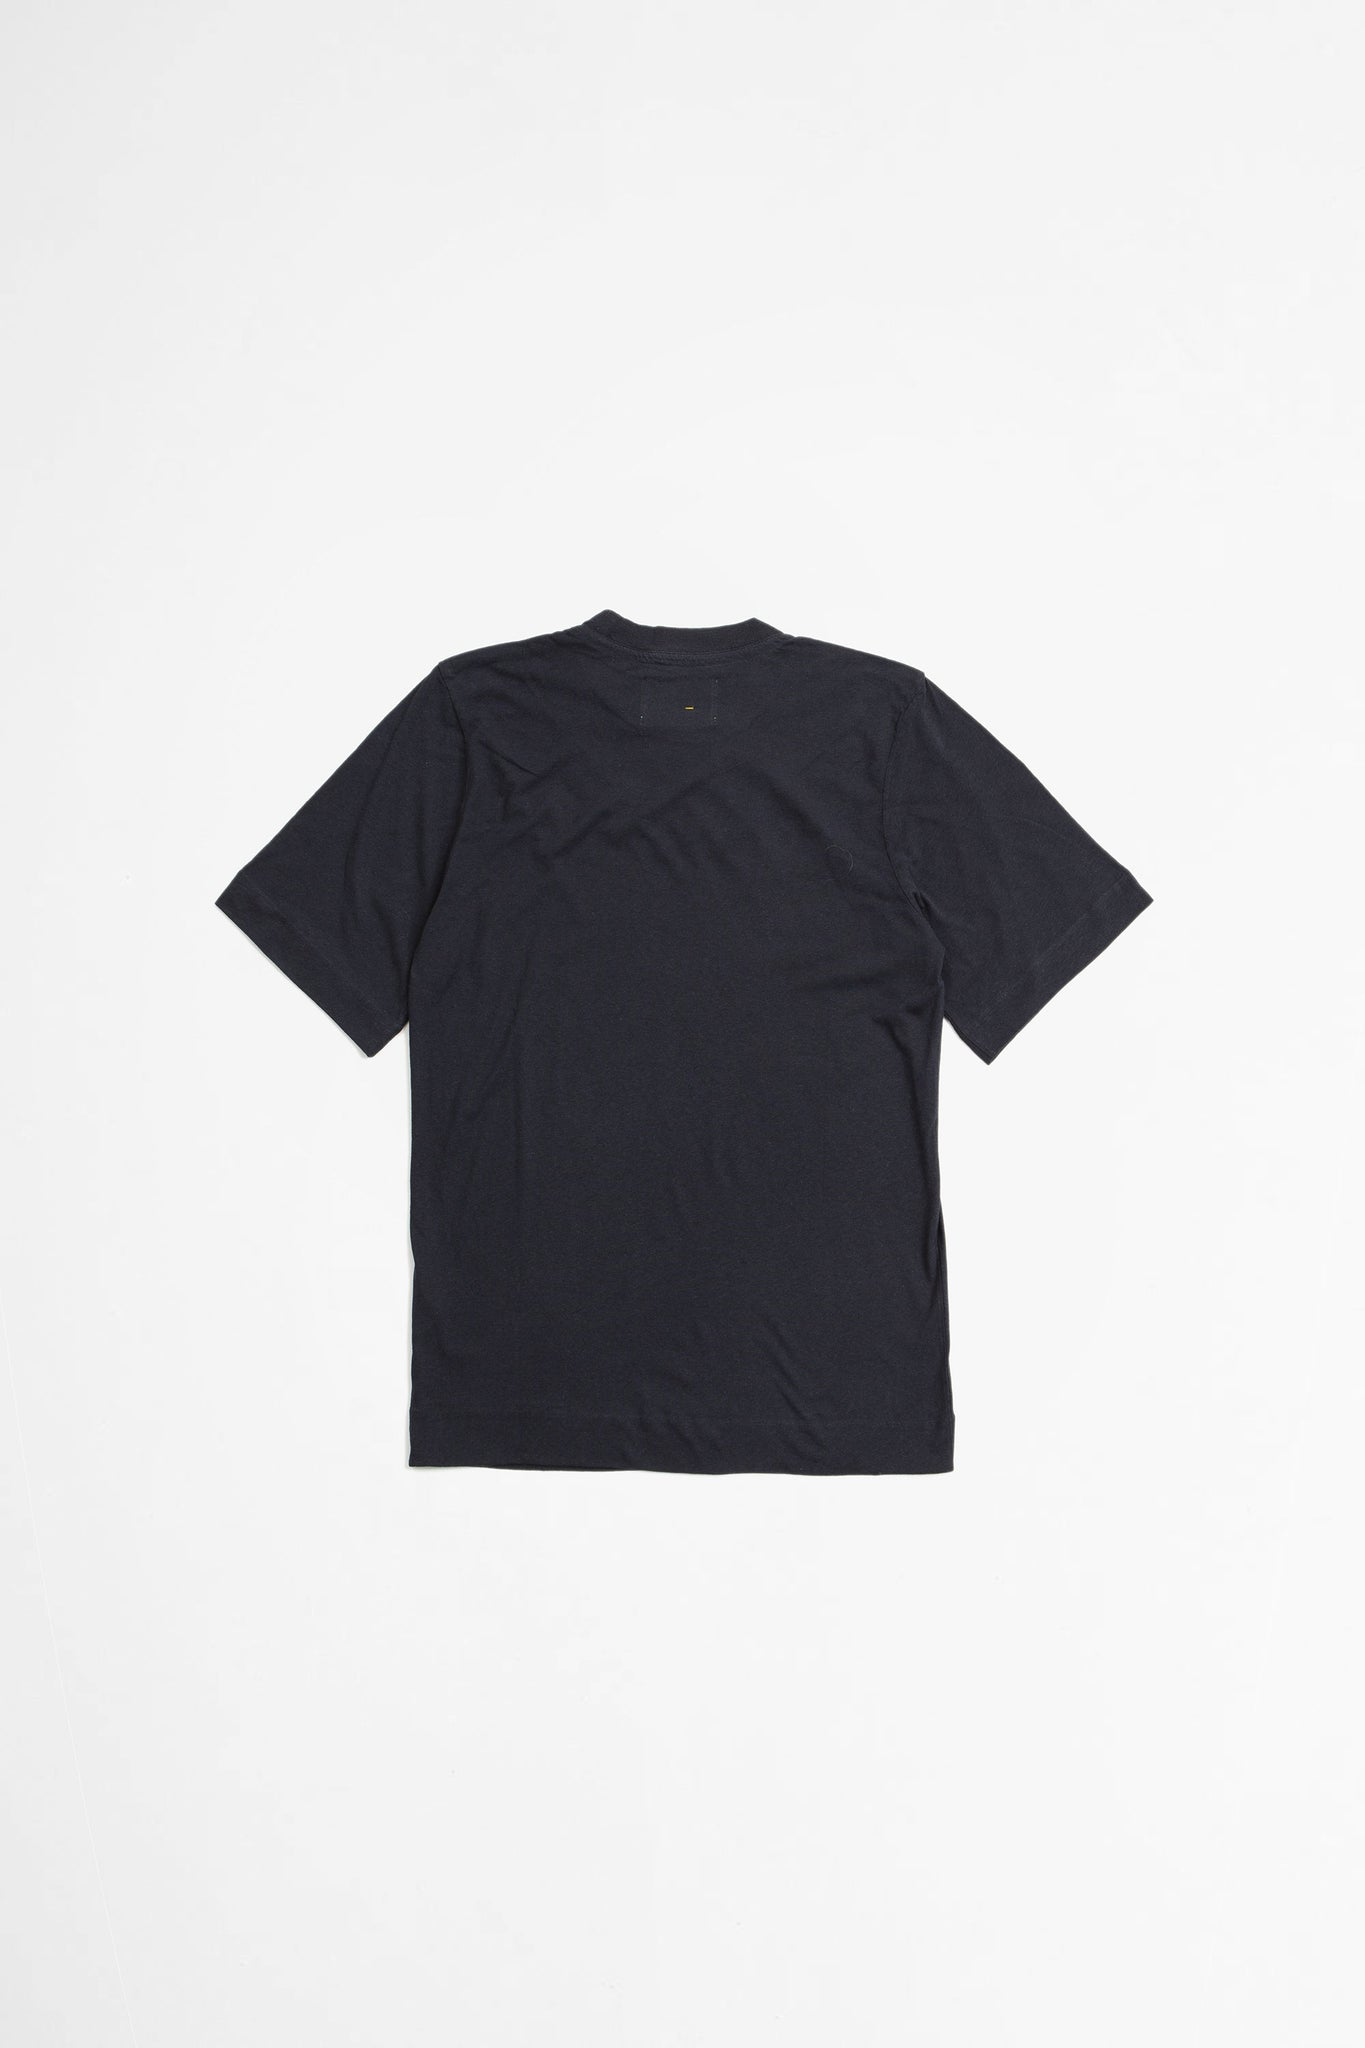 Basic t-shirt cotton linen jersey navy